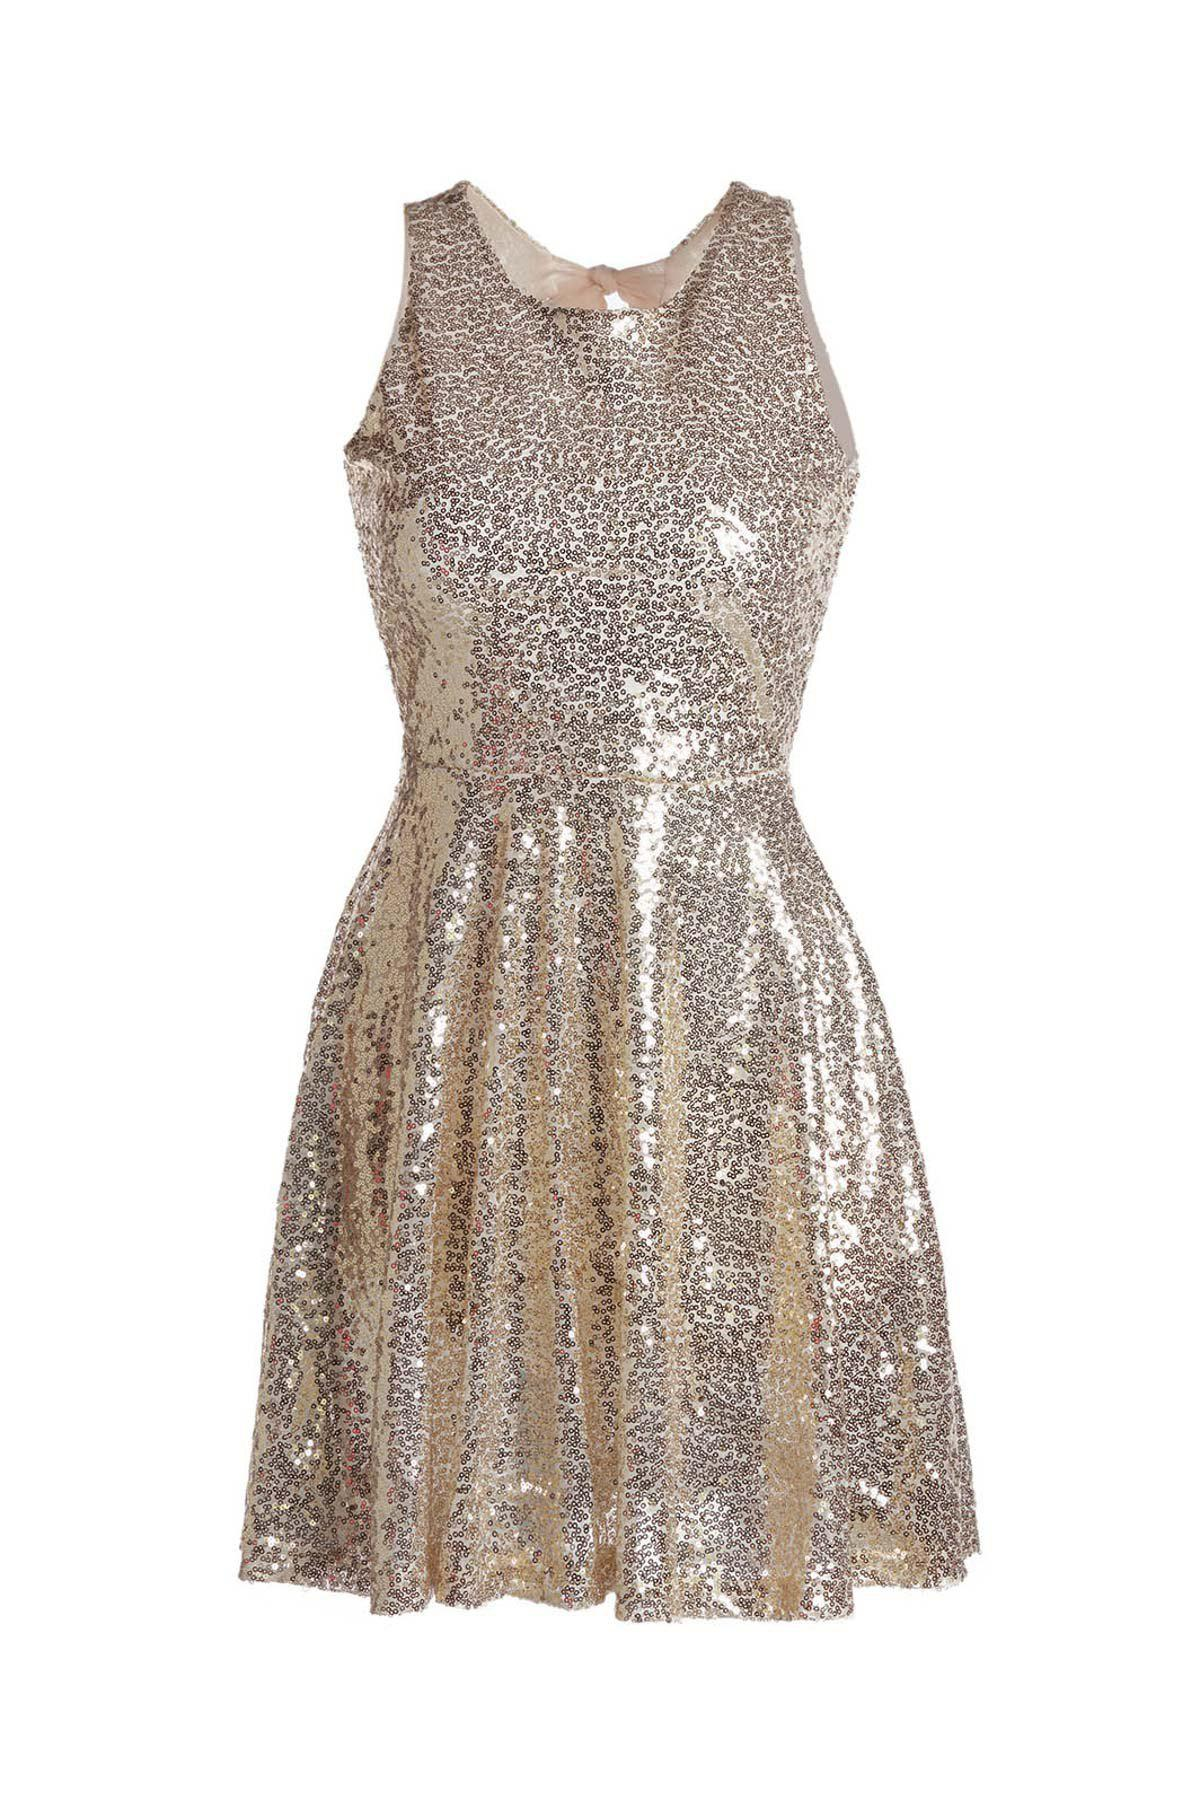 Attractive Open Back Sequined Sleeveless Mini Dress For Women - GOLDEN S